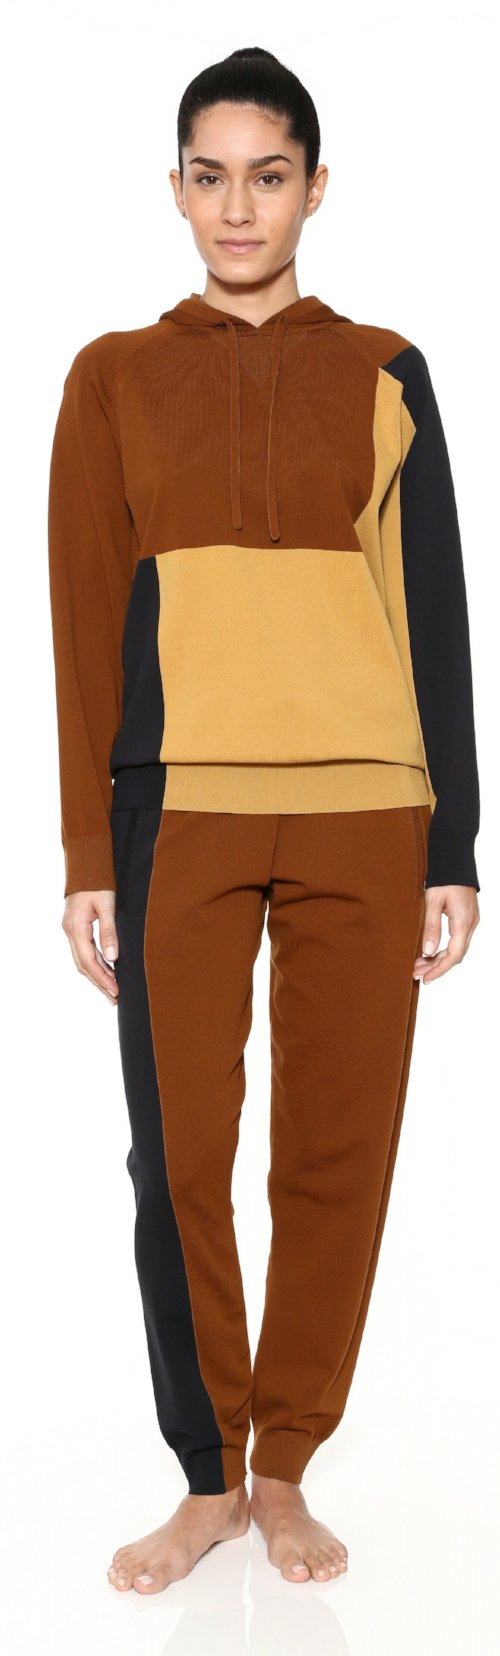 colorblock brown black pullover knit hoodie top adam selman workout work out clothes activewear